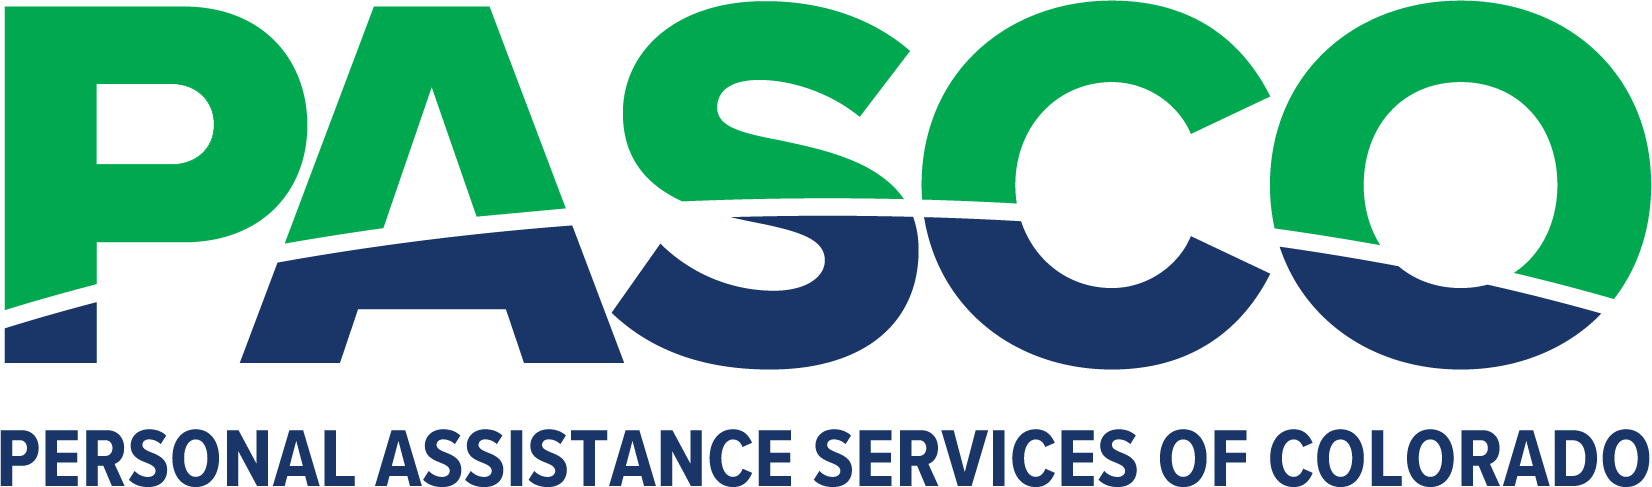 PASCO (Personal Assistance Services of Colorado) - Birdie Sponsor 2018